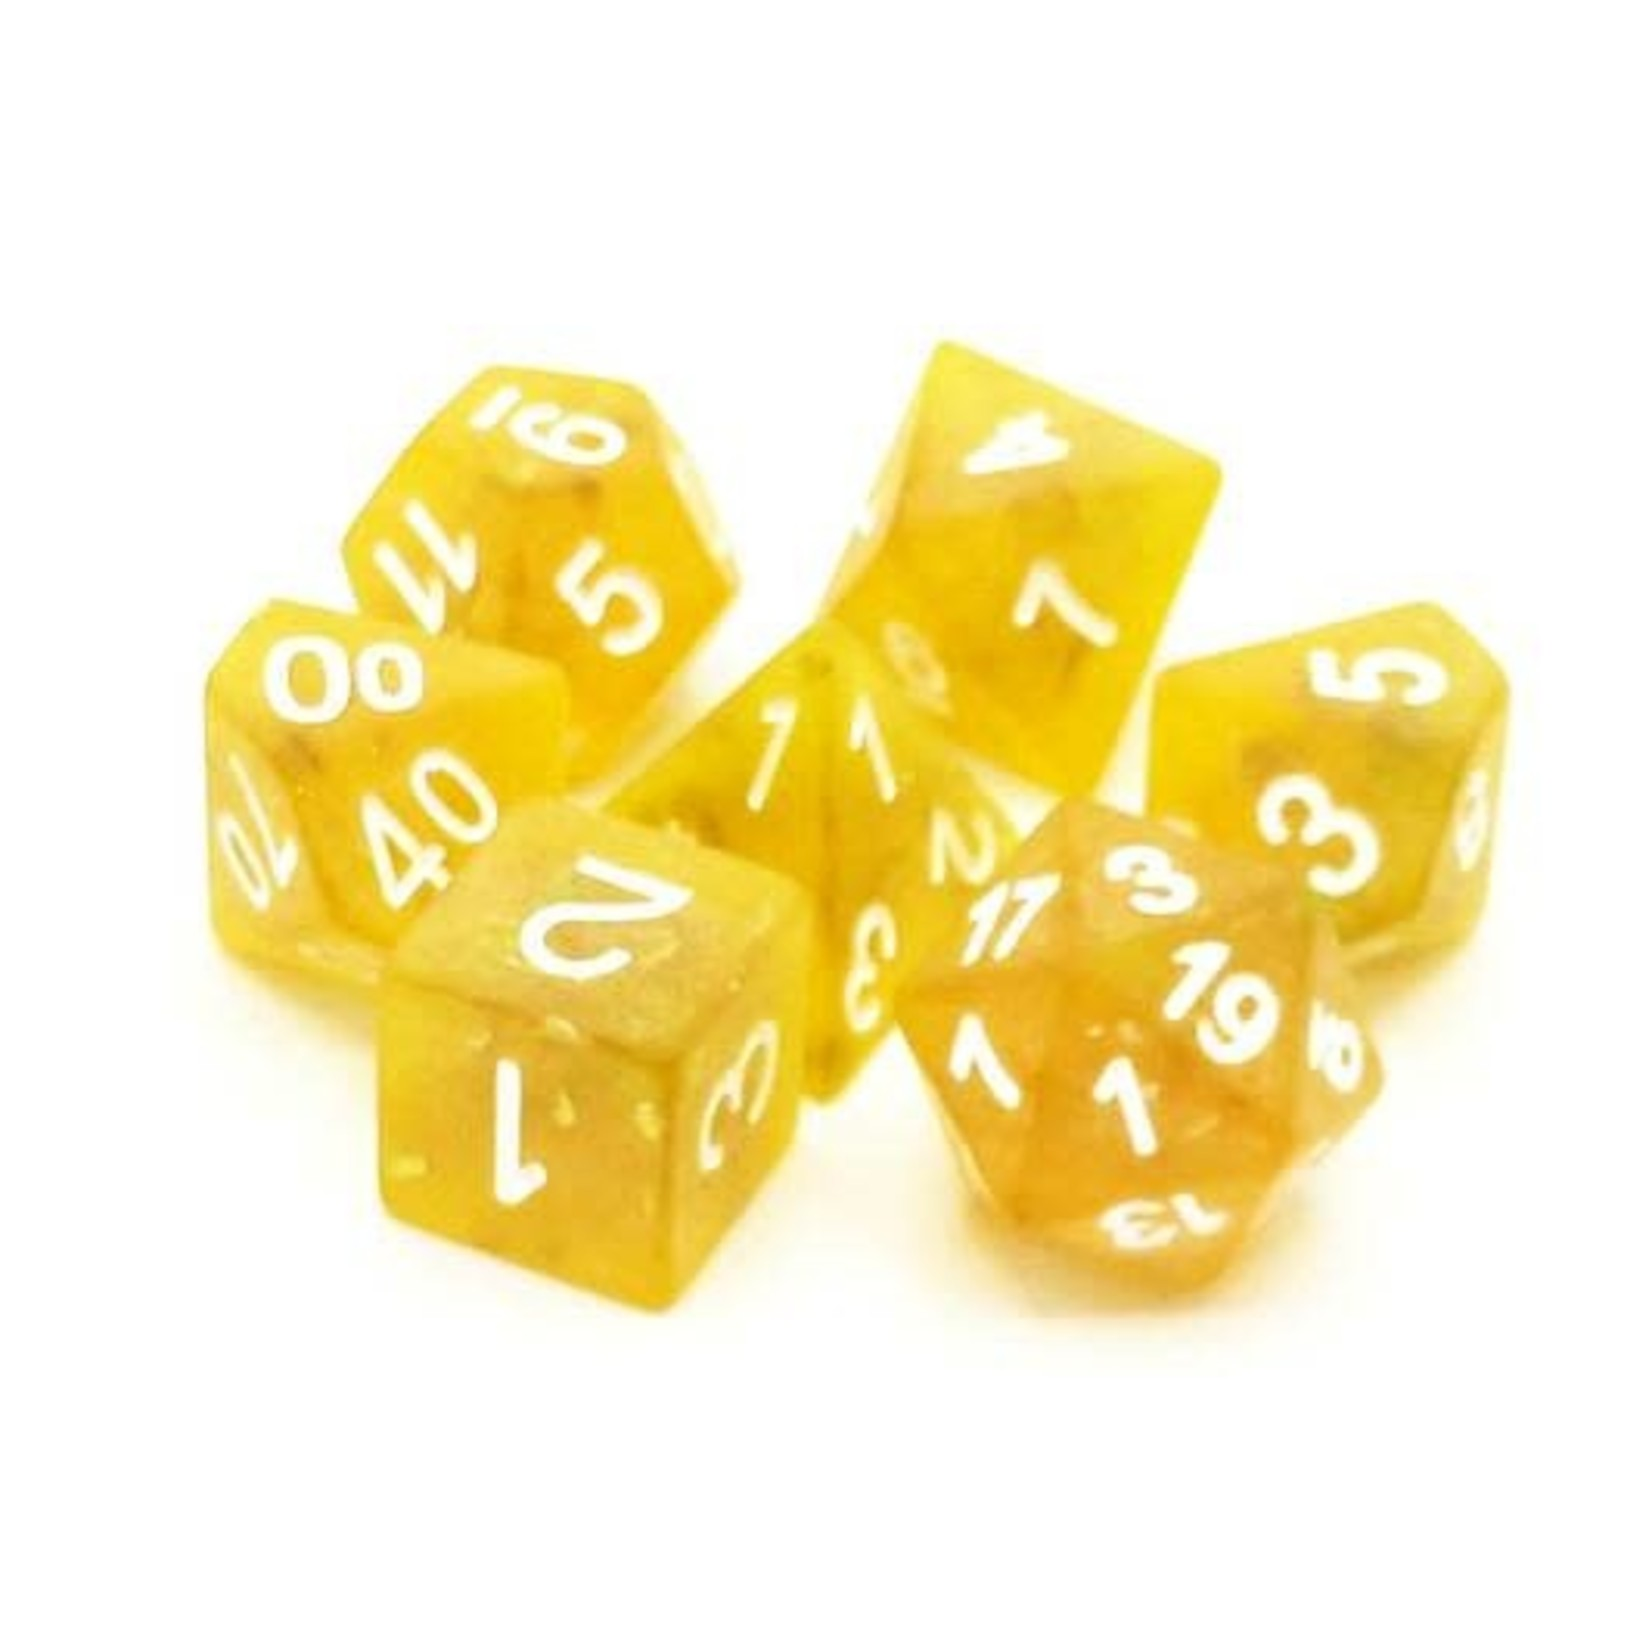 Old School 7 Piece Dice Set: Frosted Firefly - Yellow w/ White